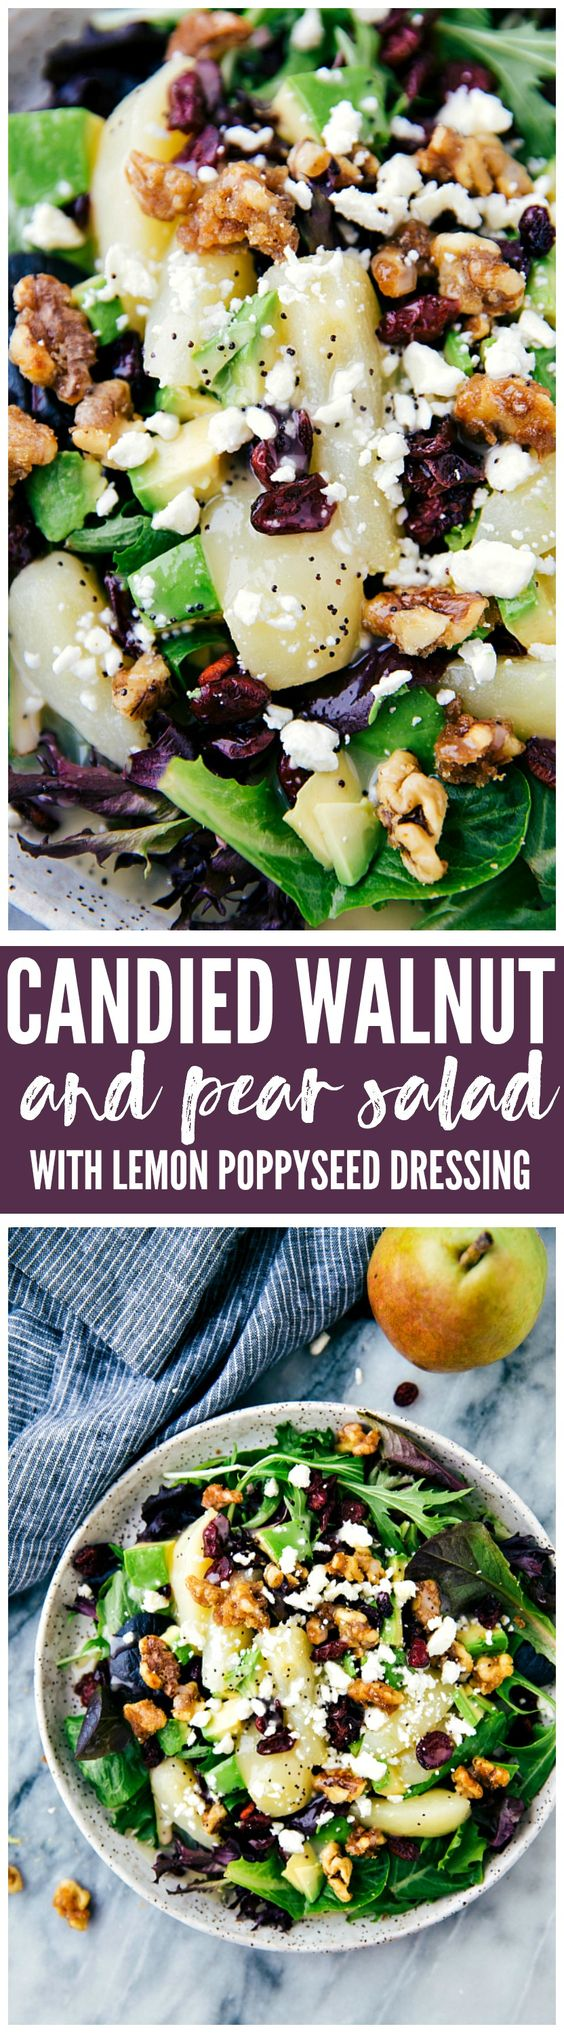 Candied Walnut and Pear Salad with Lemon Poppyseed Dressing Recipe via The Recipe Critic - A delicious and simple to salad with fresh sliced pears, avocado, cranberries and feta cheese. Drizzled with a lemon poppyseed dressing this salad is mouthwatering and full of flavor!: